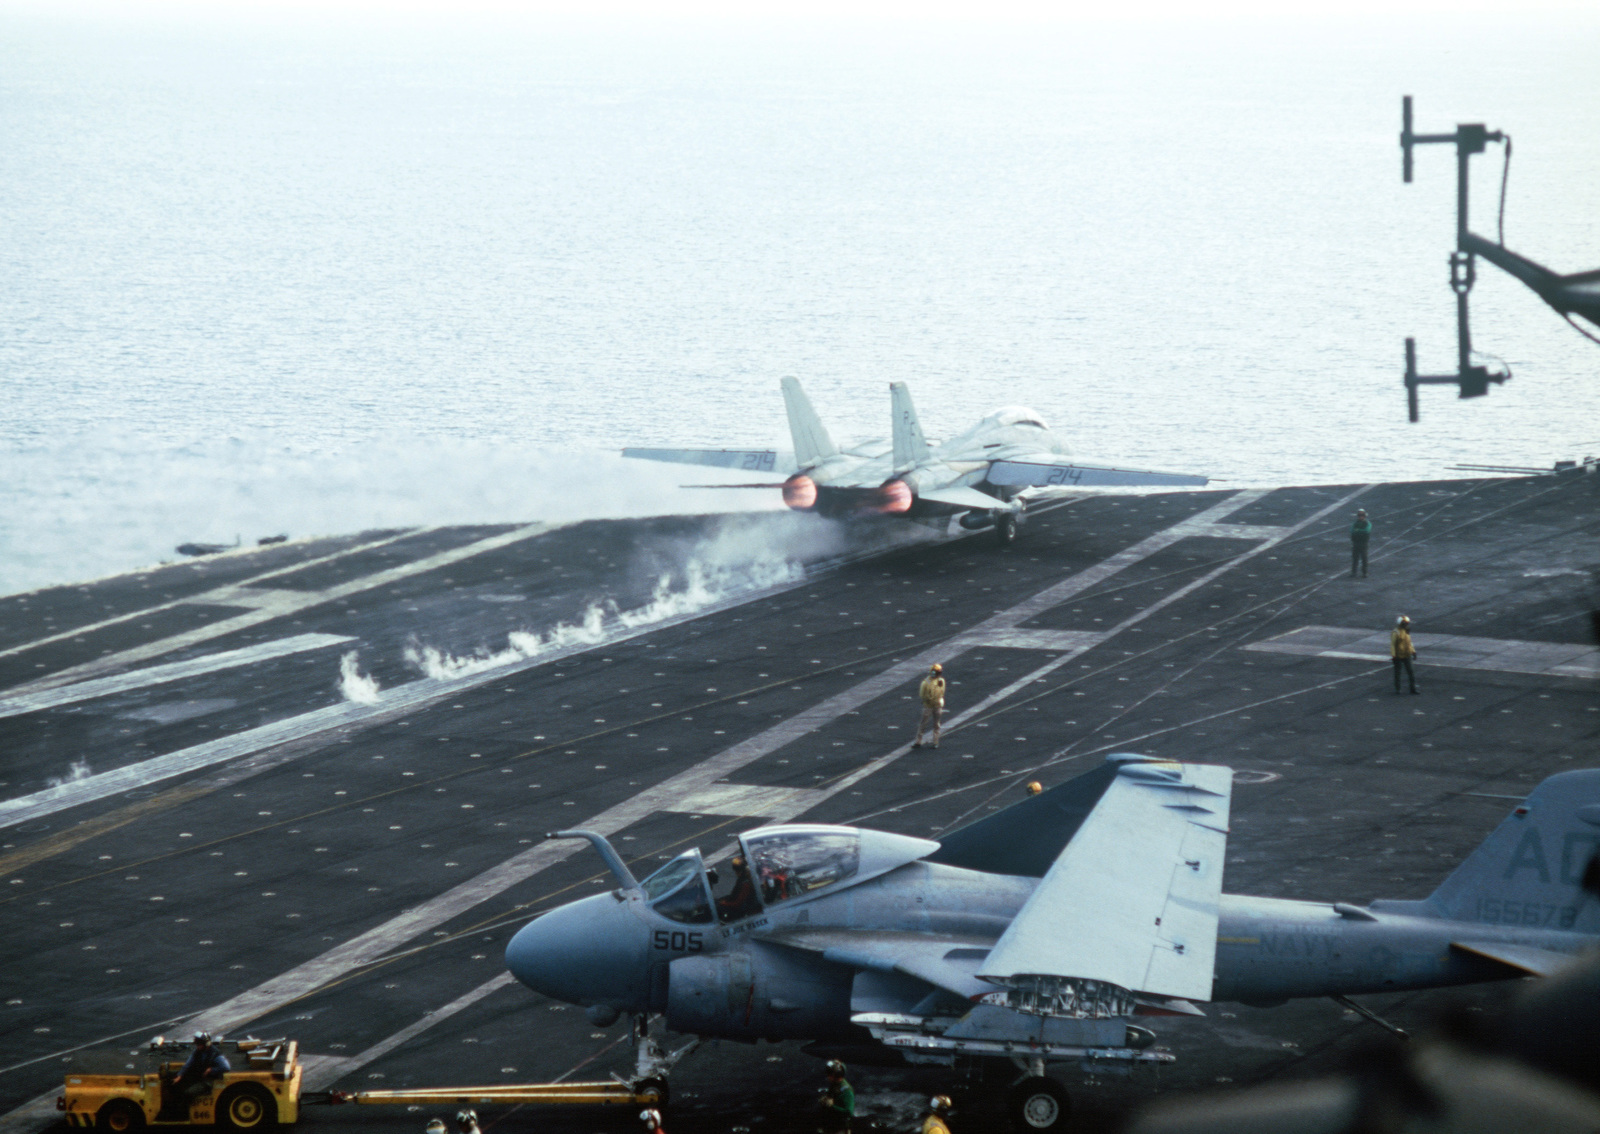 A Fighter Squadron 32 (VF-32) F-14A Tomcat aircraft is launched from the aircraft carrier USS JOHN F. KENNEDY (CV 67) during NATO Exercise DISPLAY DETERMINATION '86. An A-6E Intruder is being towed by an MD-3A